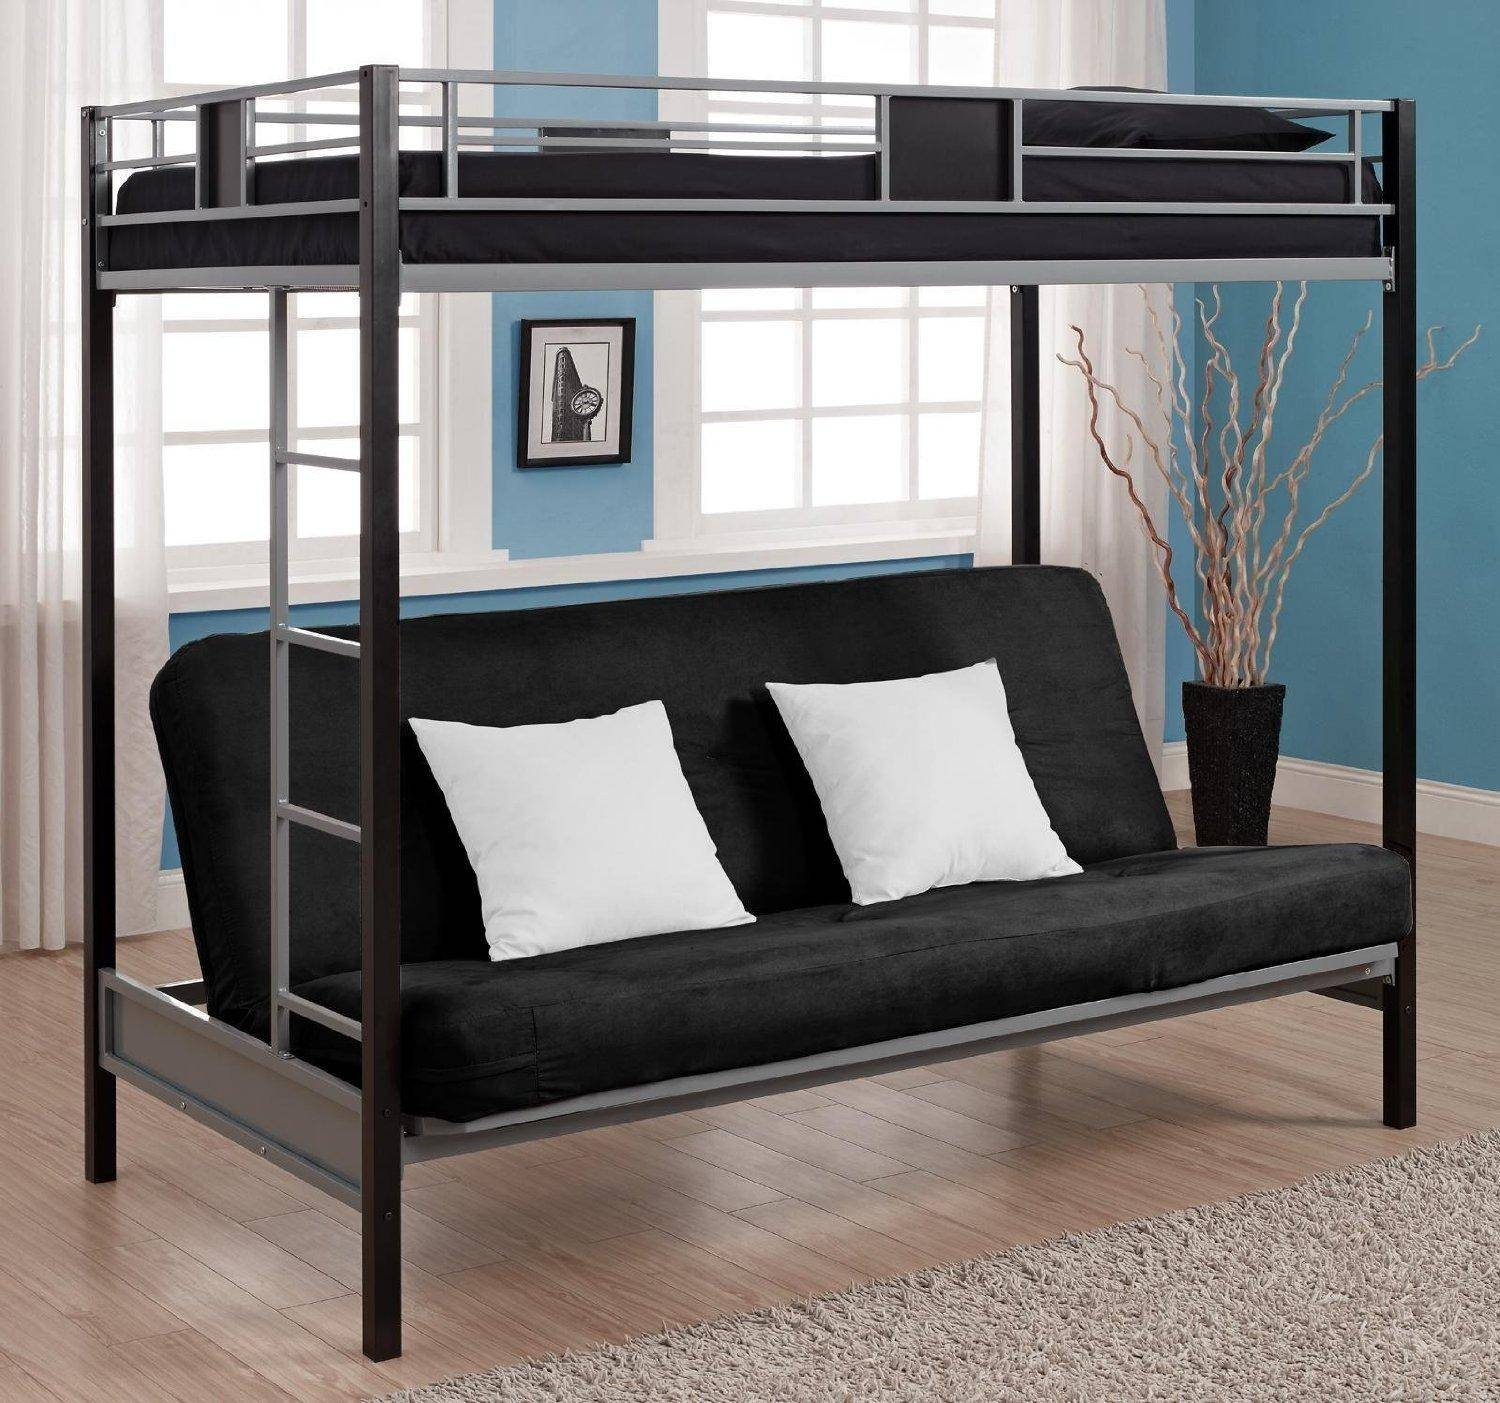 20 Photos Bunk Bed With Sofas Underneath | Sofa Ideas pertaining to Bunk Bed With Sofas Underneath (Image 1 of 15)